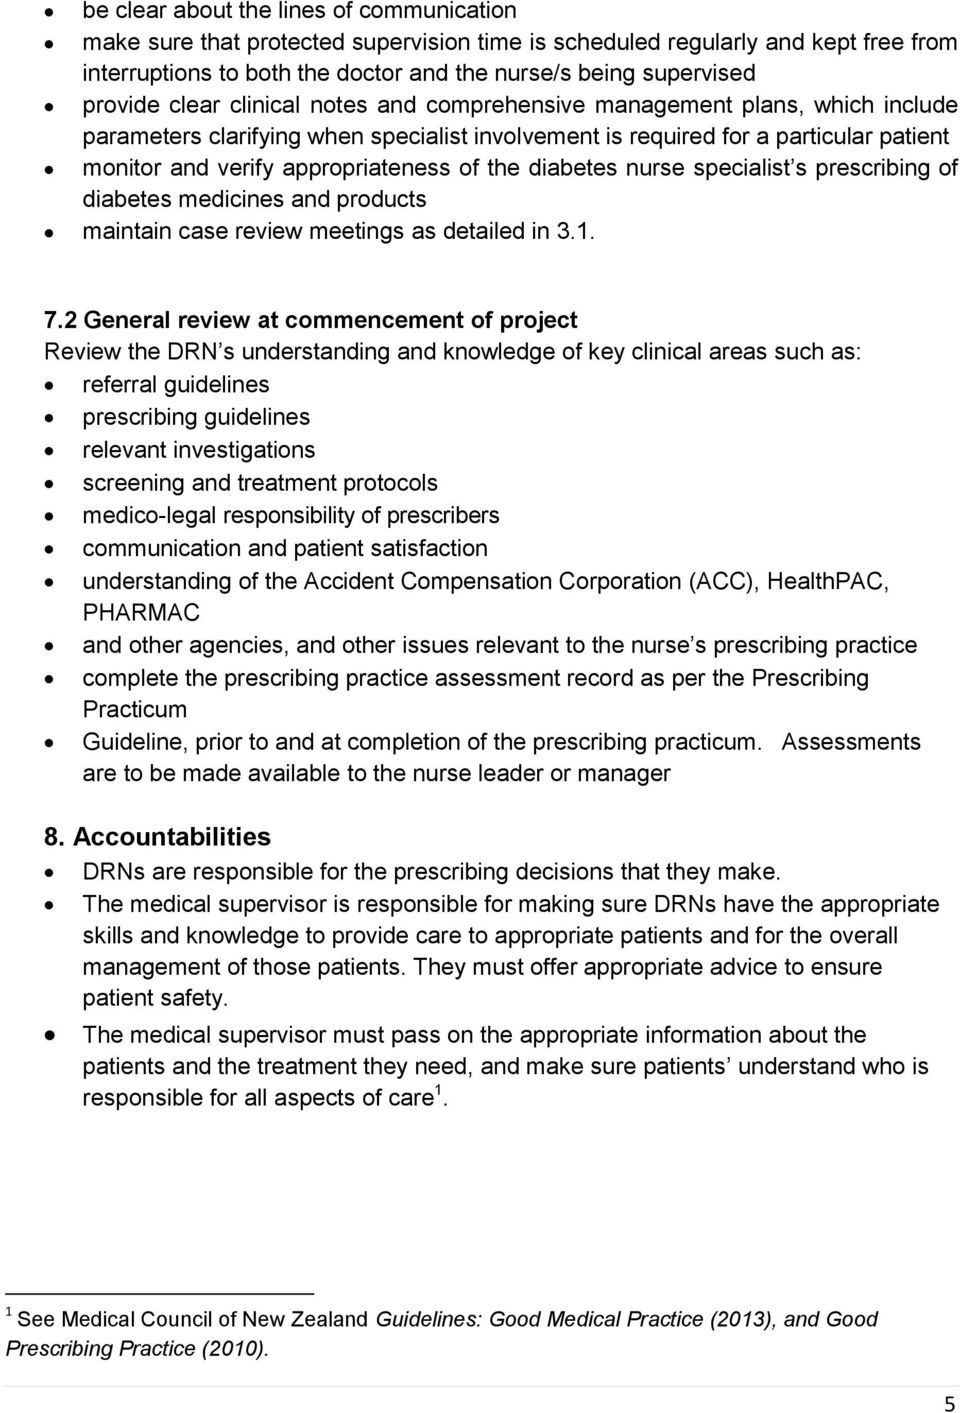 diabetes nurse specialist s prescribing of diabetes medicines and products maintain case review meetings as detailed in 3.1. 7.